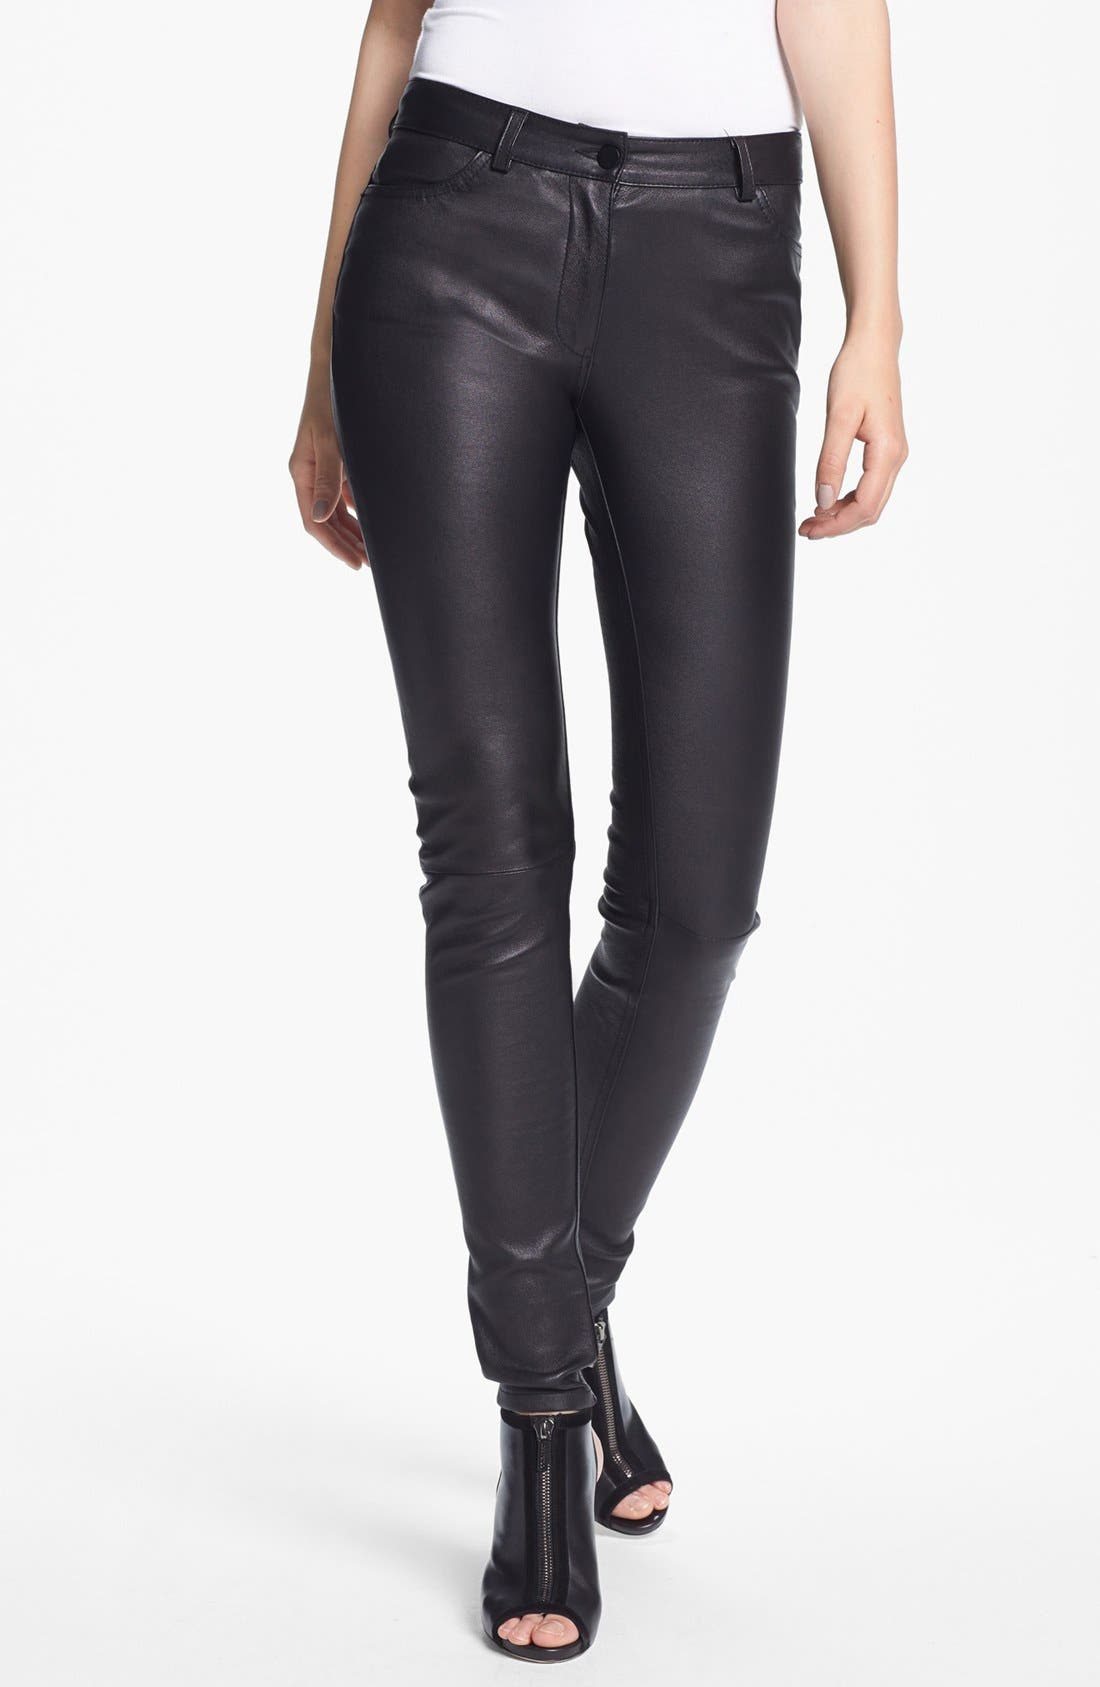 Alternate Image 1 Selected - T by Alexander Wang Stretch Leather Pants